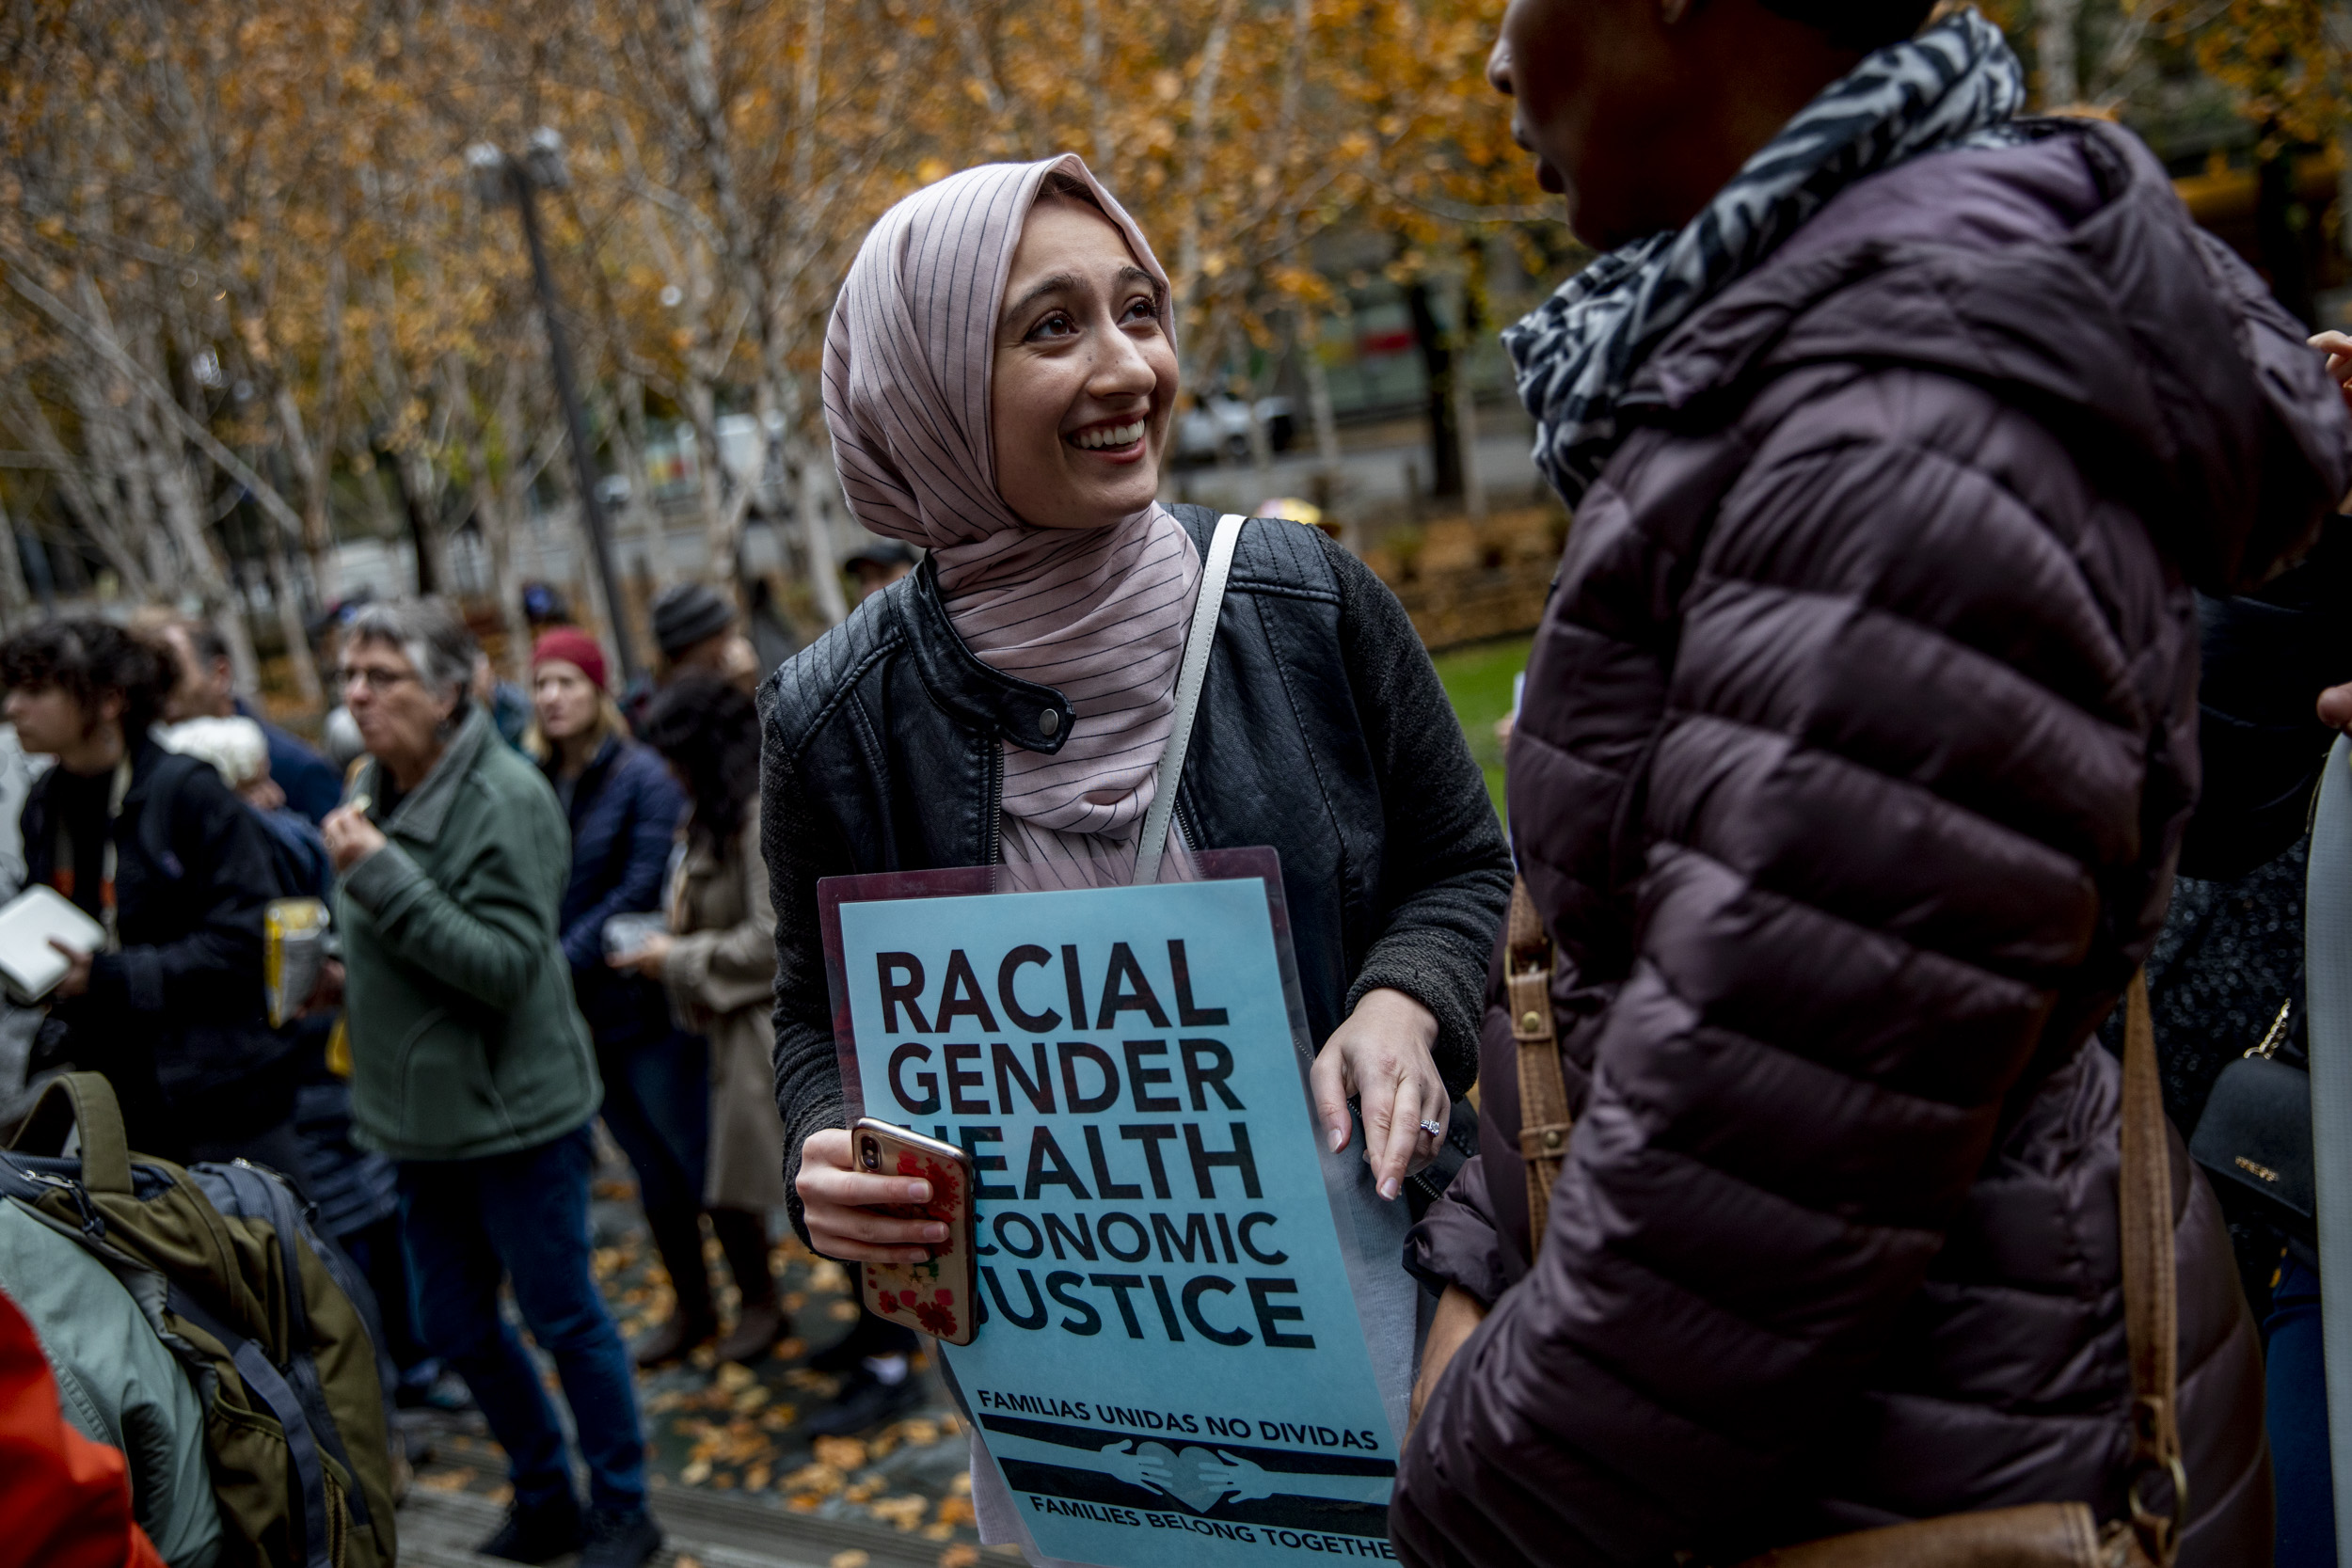 Washington State Might Have Just Elected Its First Two Muslim Women to Office